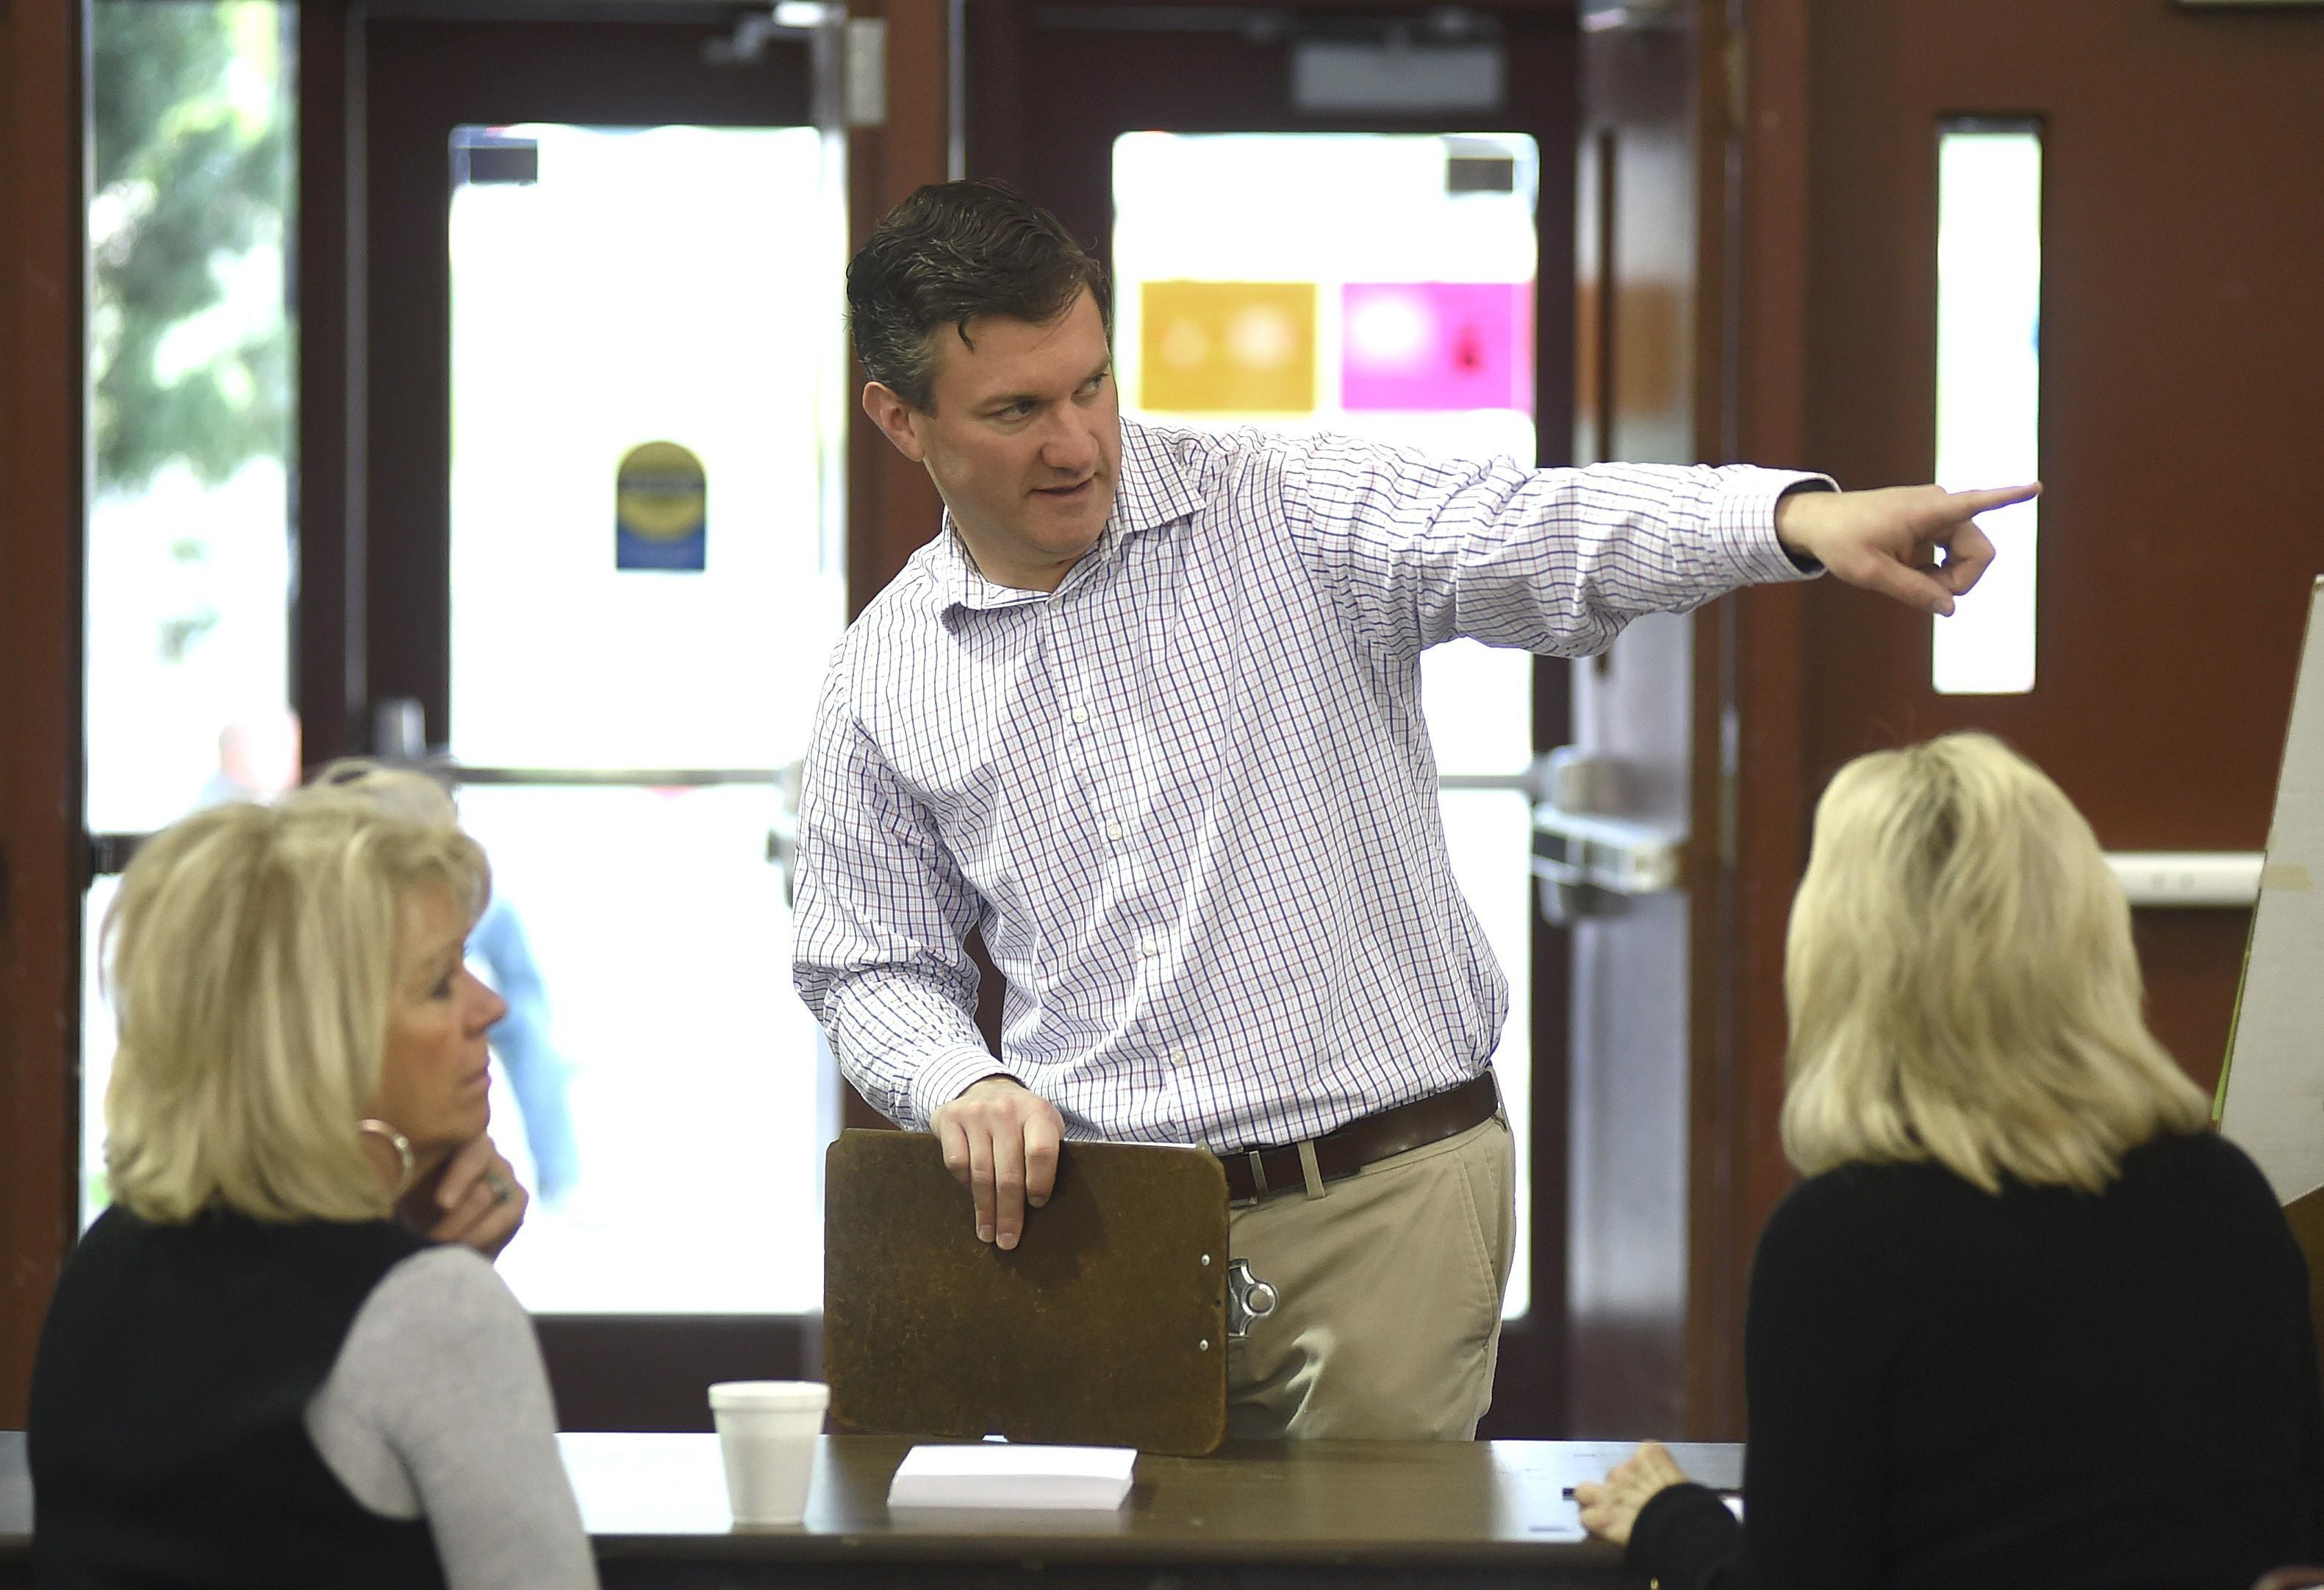 Yellowstone County Election Administrator Bret Rutherford briefs election staff at MetraPark in Billings, Mont., Thursday, May 25, 2017. (Larry Mayer /The Billings Gazette via AP)